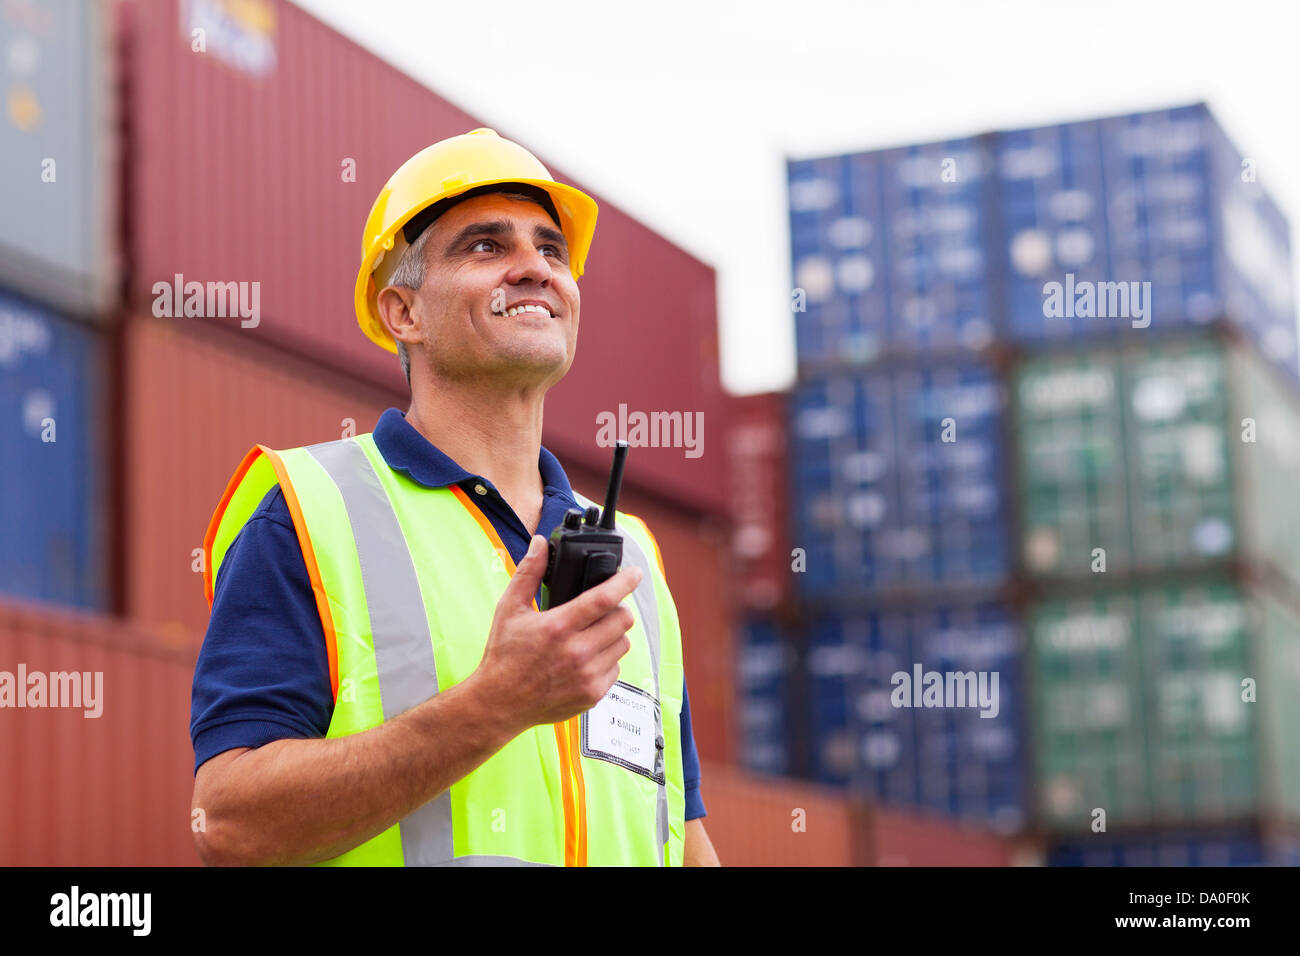 smiling middle aged warehouse worker holding radio at container yard - Stock Image